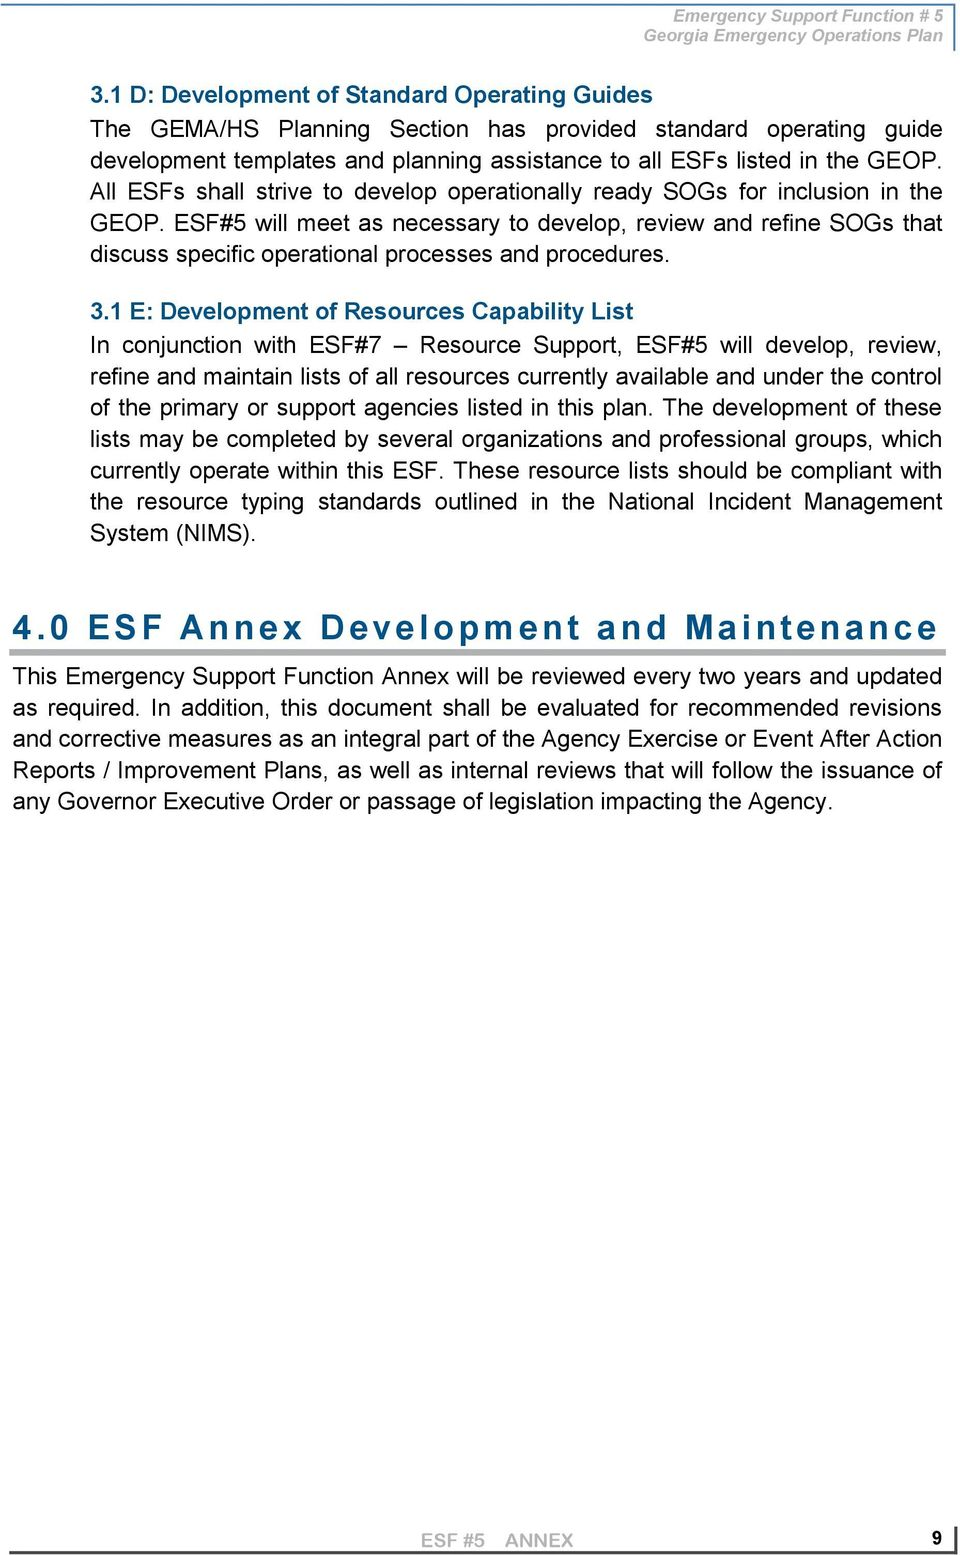 All ESFs shall strive to develop operationally ready SOGs for inclusion in the GEOP.